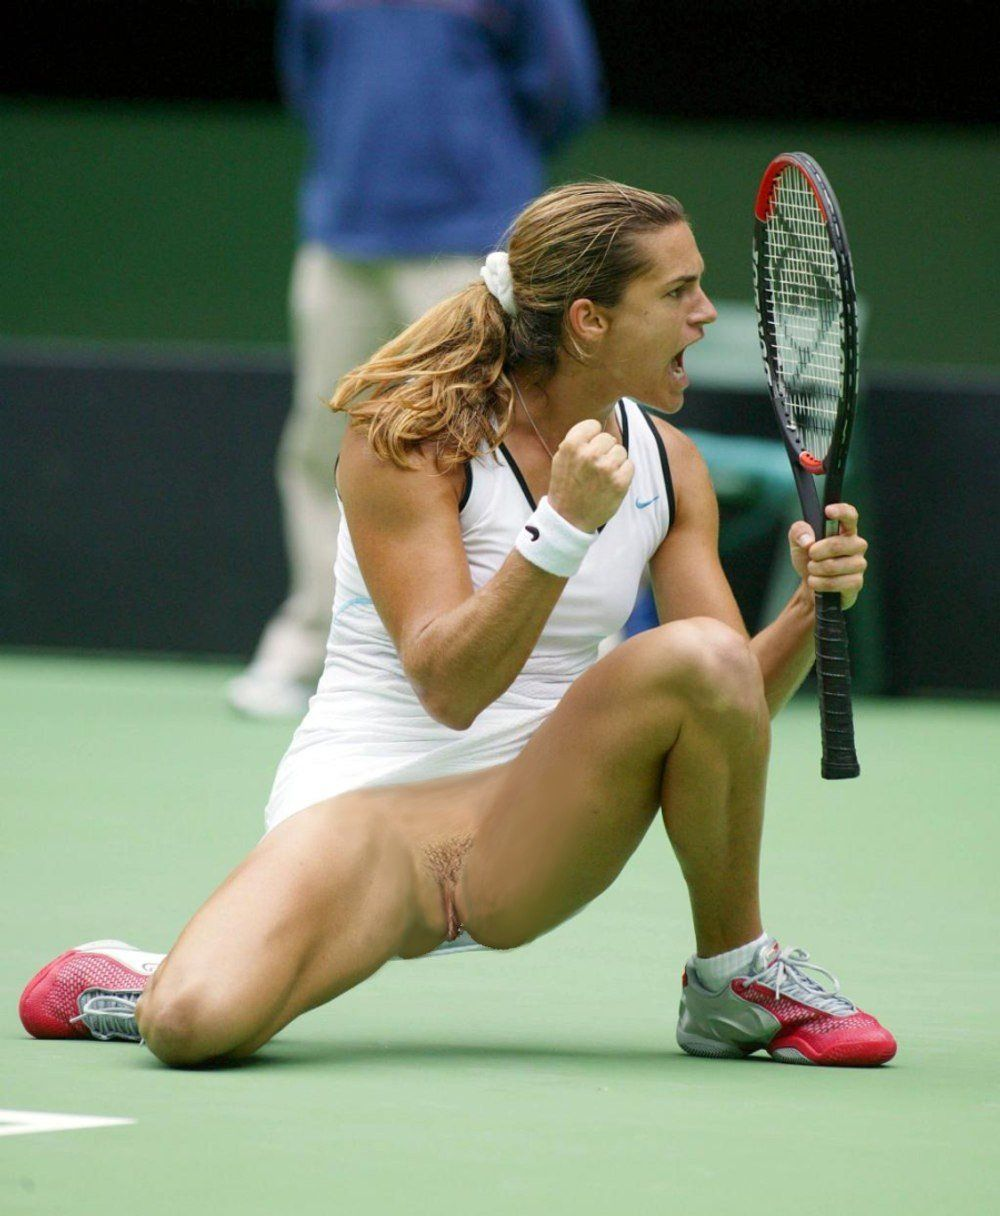 Jupiter reccomend Nude tennis stars playing tennis